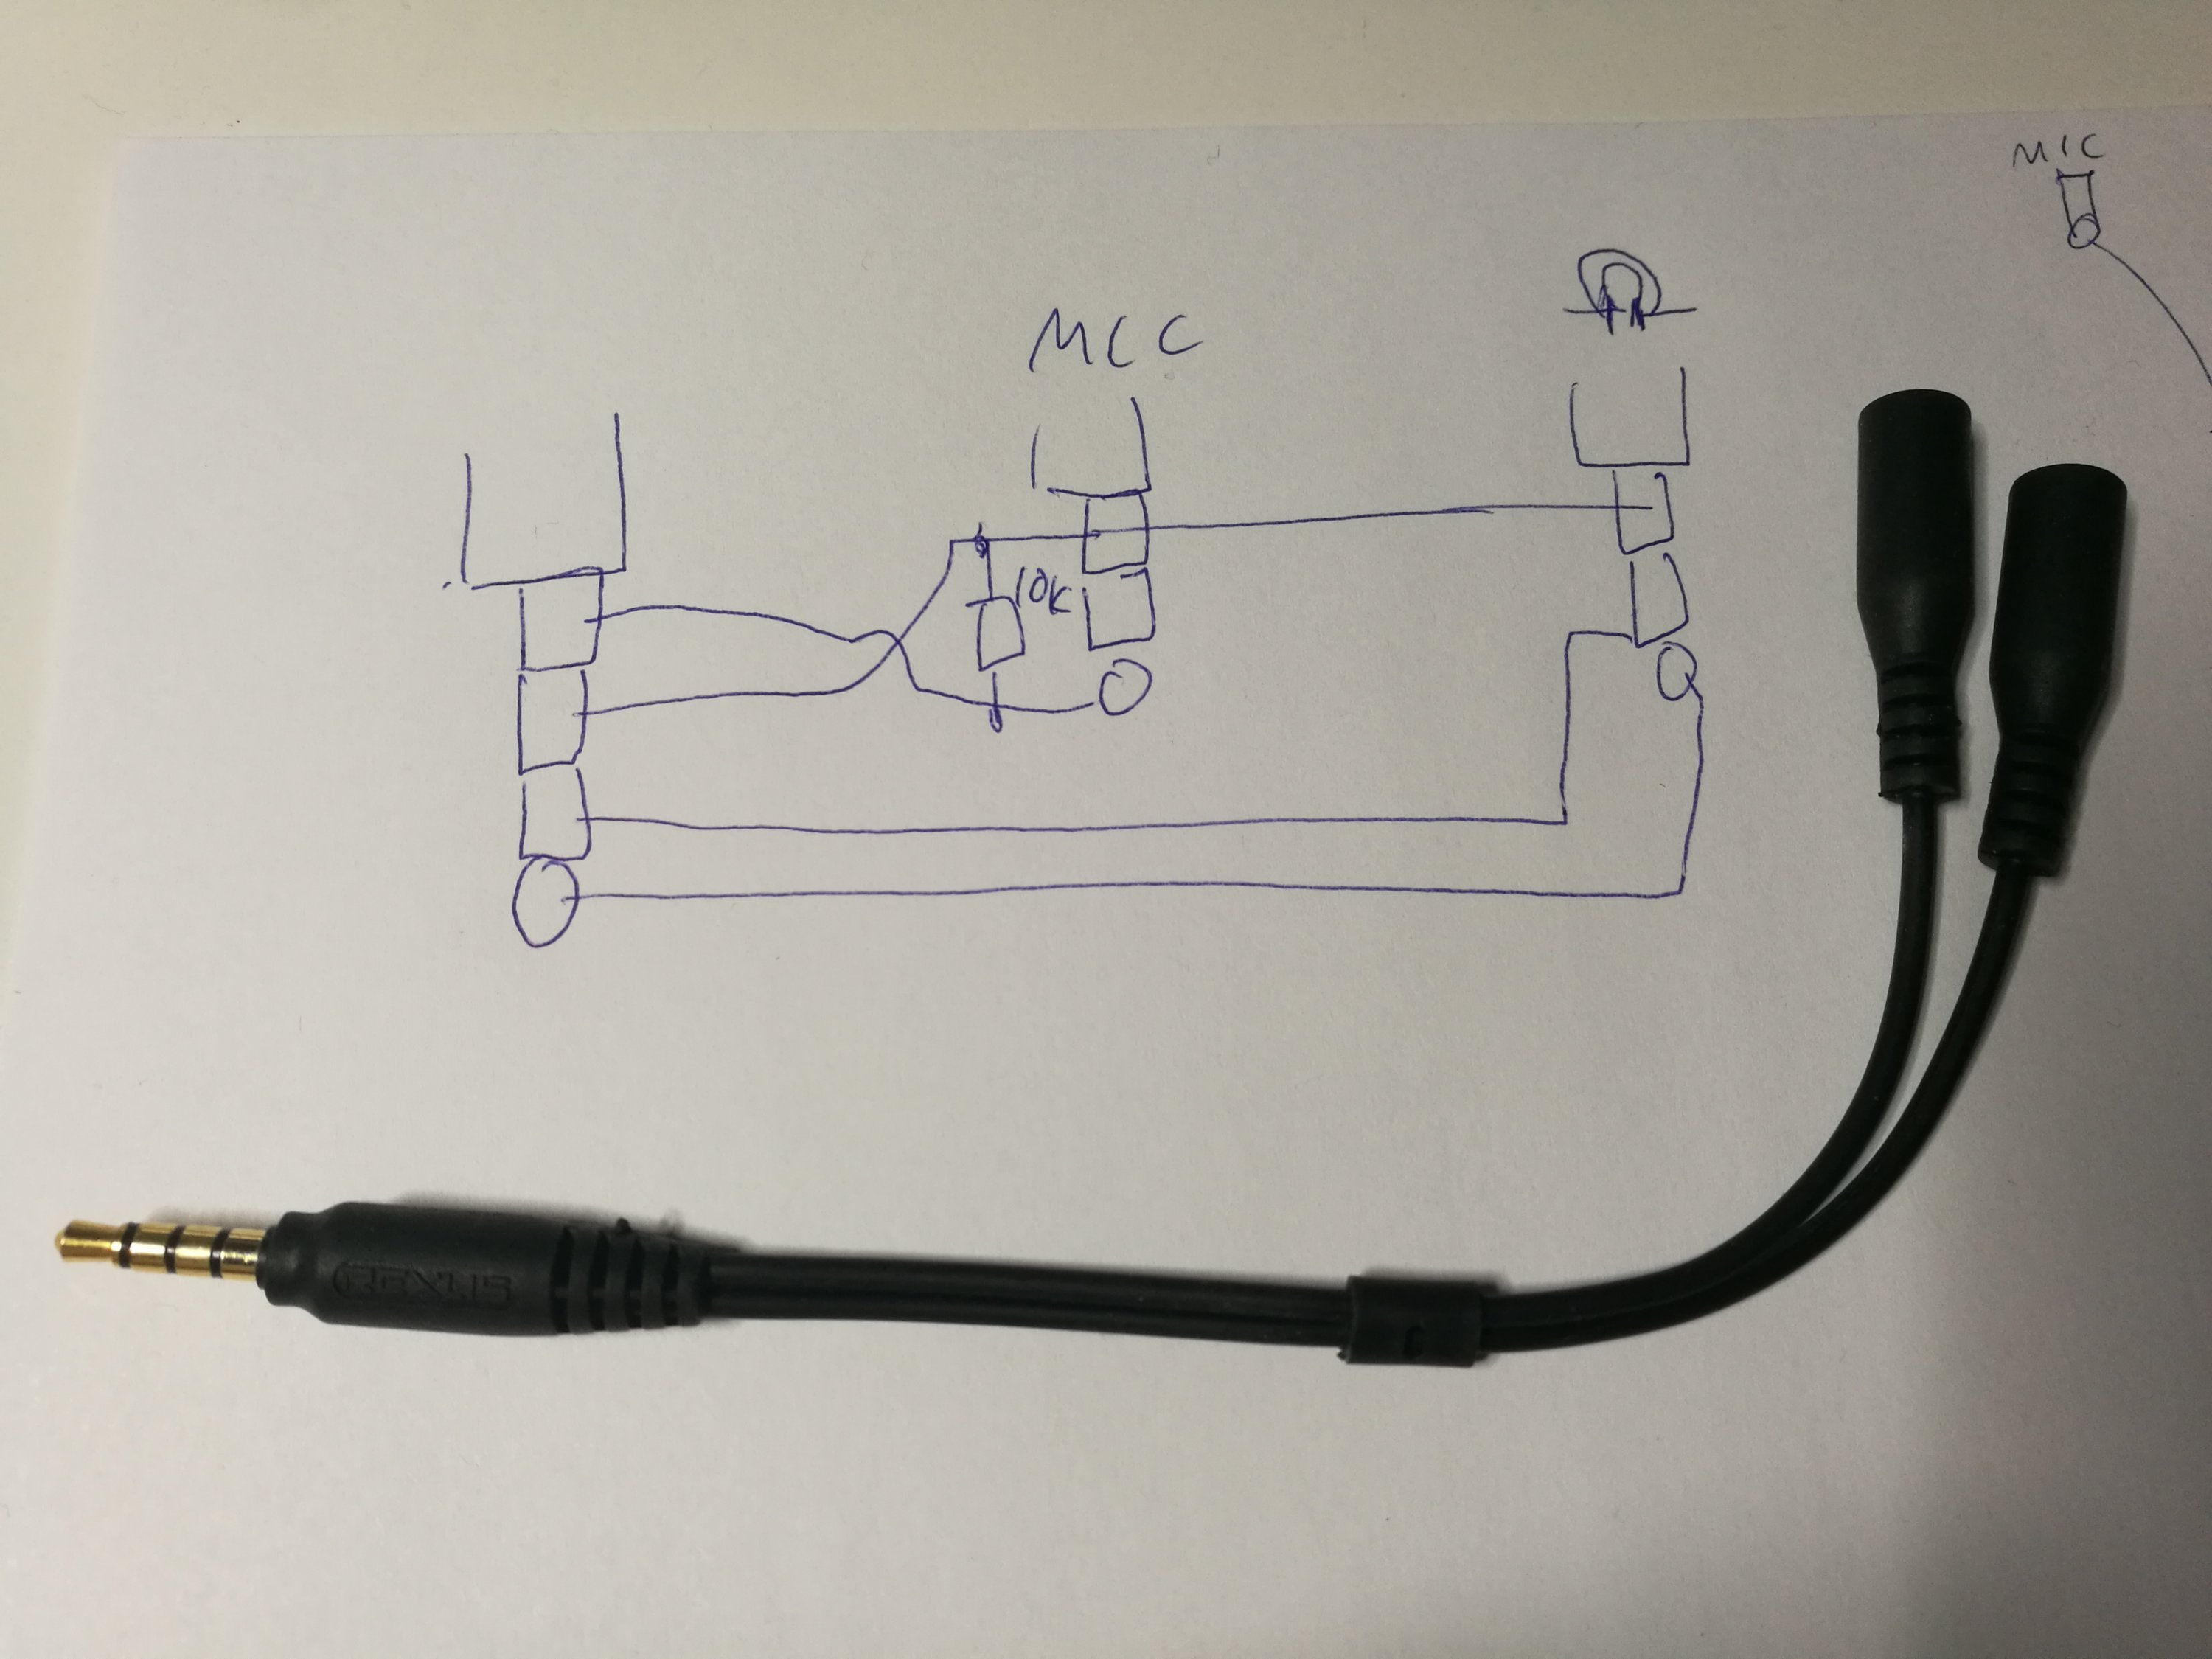 Trrs Plug To Two Trs Jack Headset Adapters